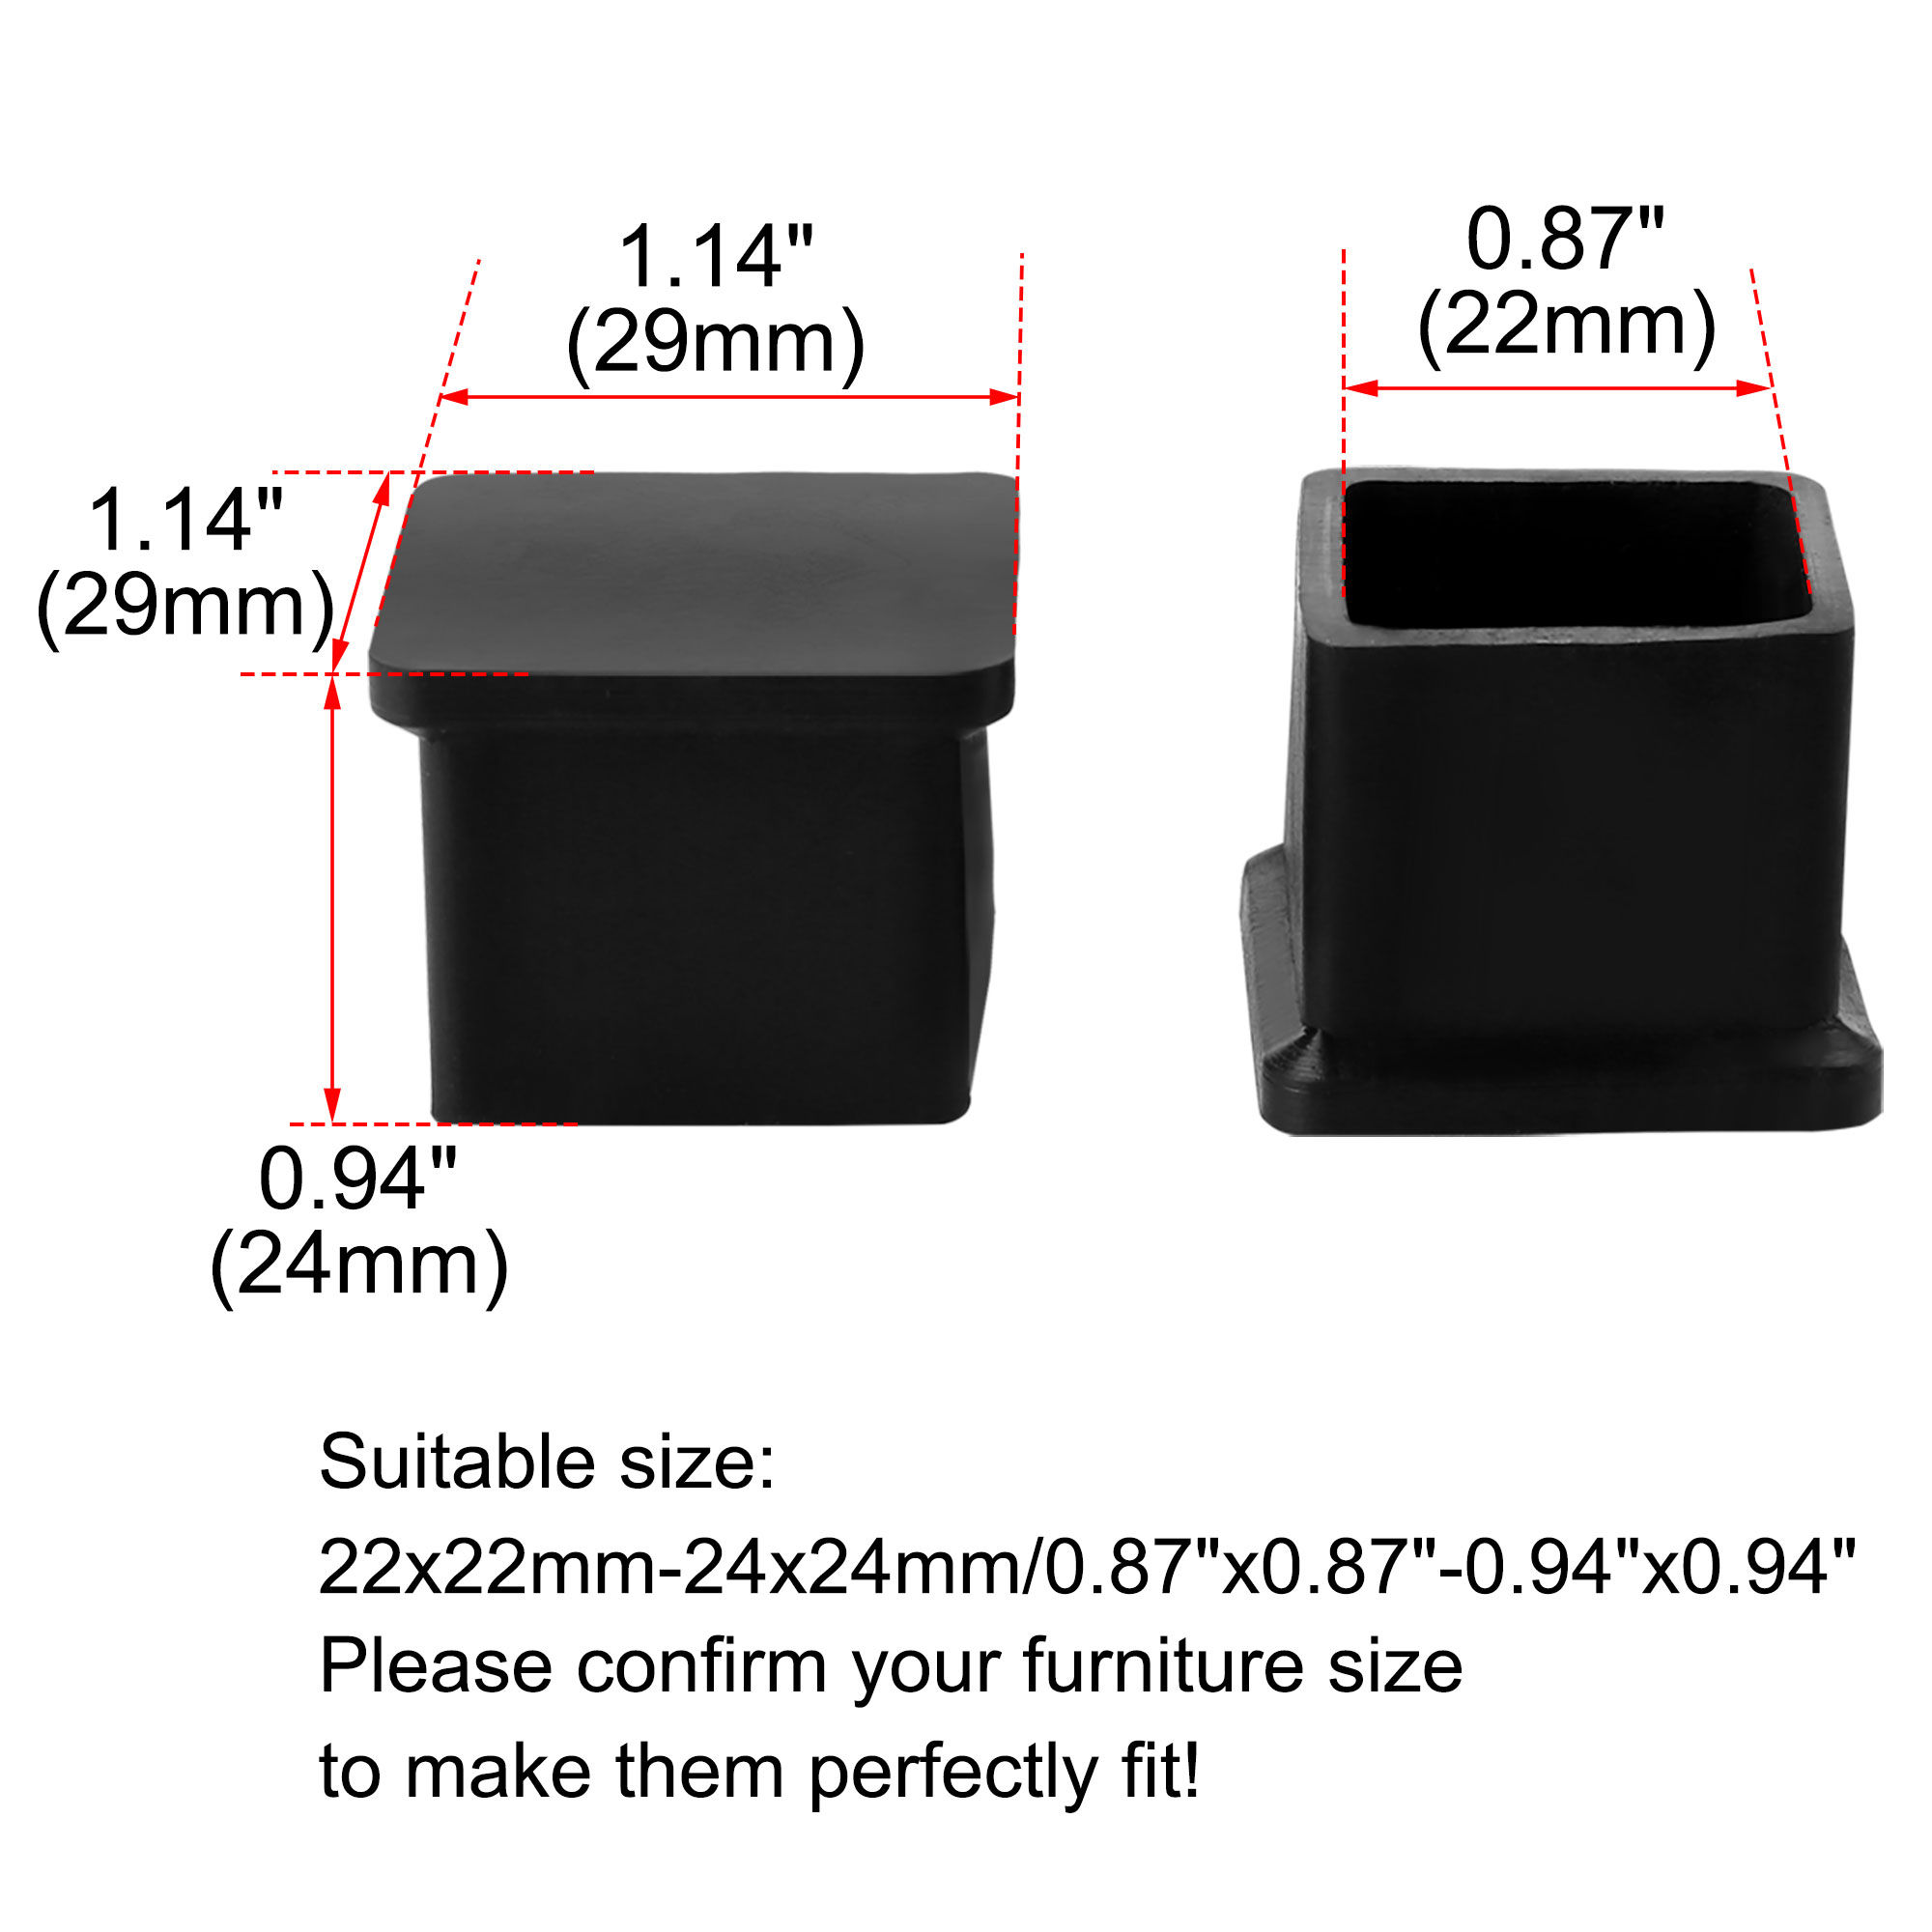 """Desk Table Leg Caps End Tip Home Furniture Protector 28pcs 0.87""""x0.87"""" (22x22mm) - image 2 of 7"""